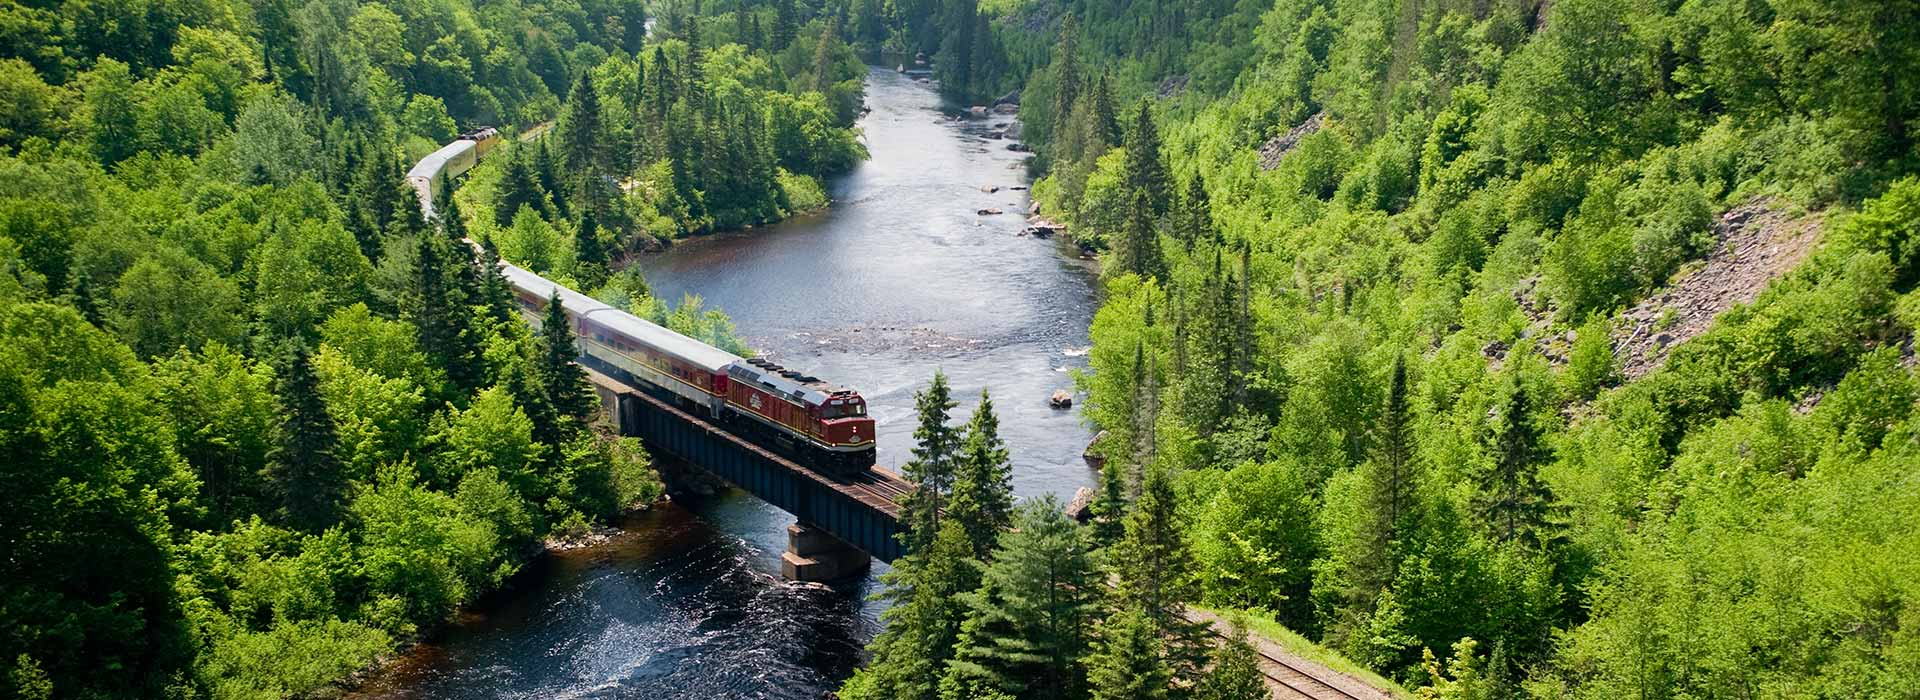 attractions-agawa-canyon